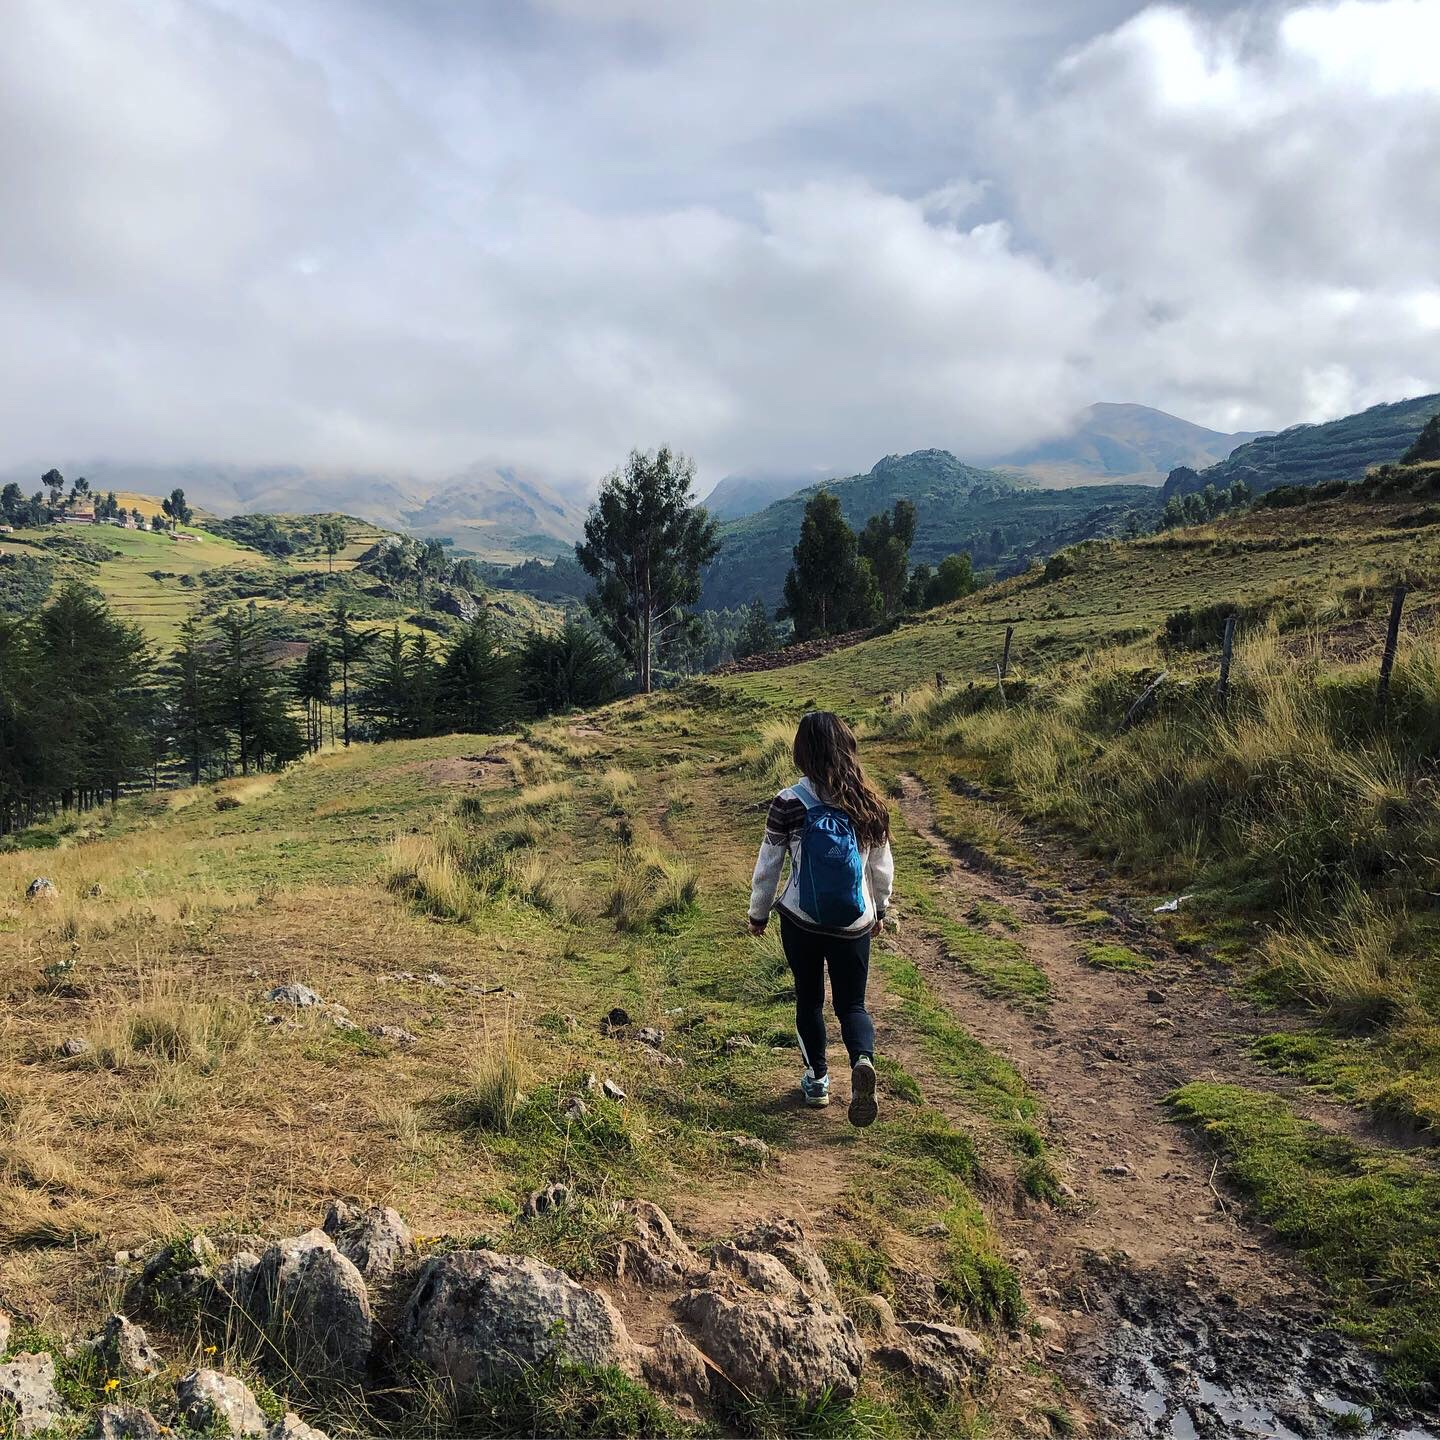 Astounding views of mountains and valleys along the hike